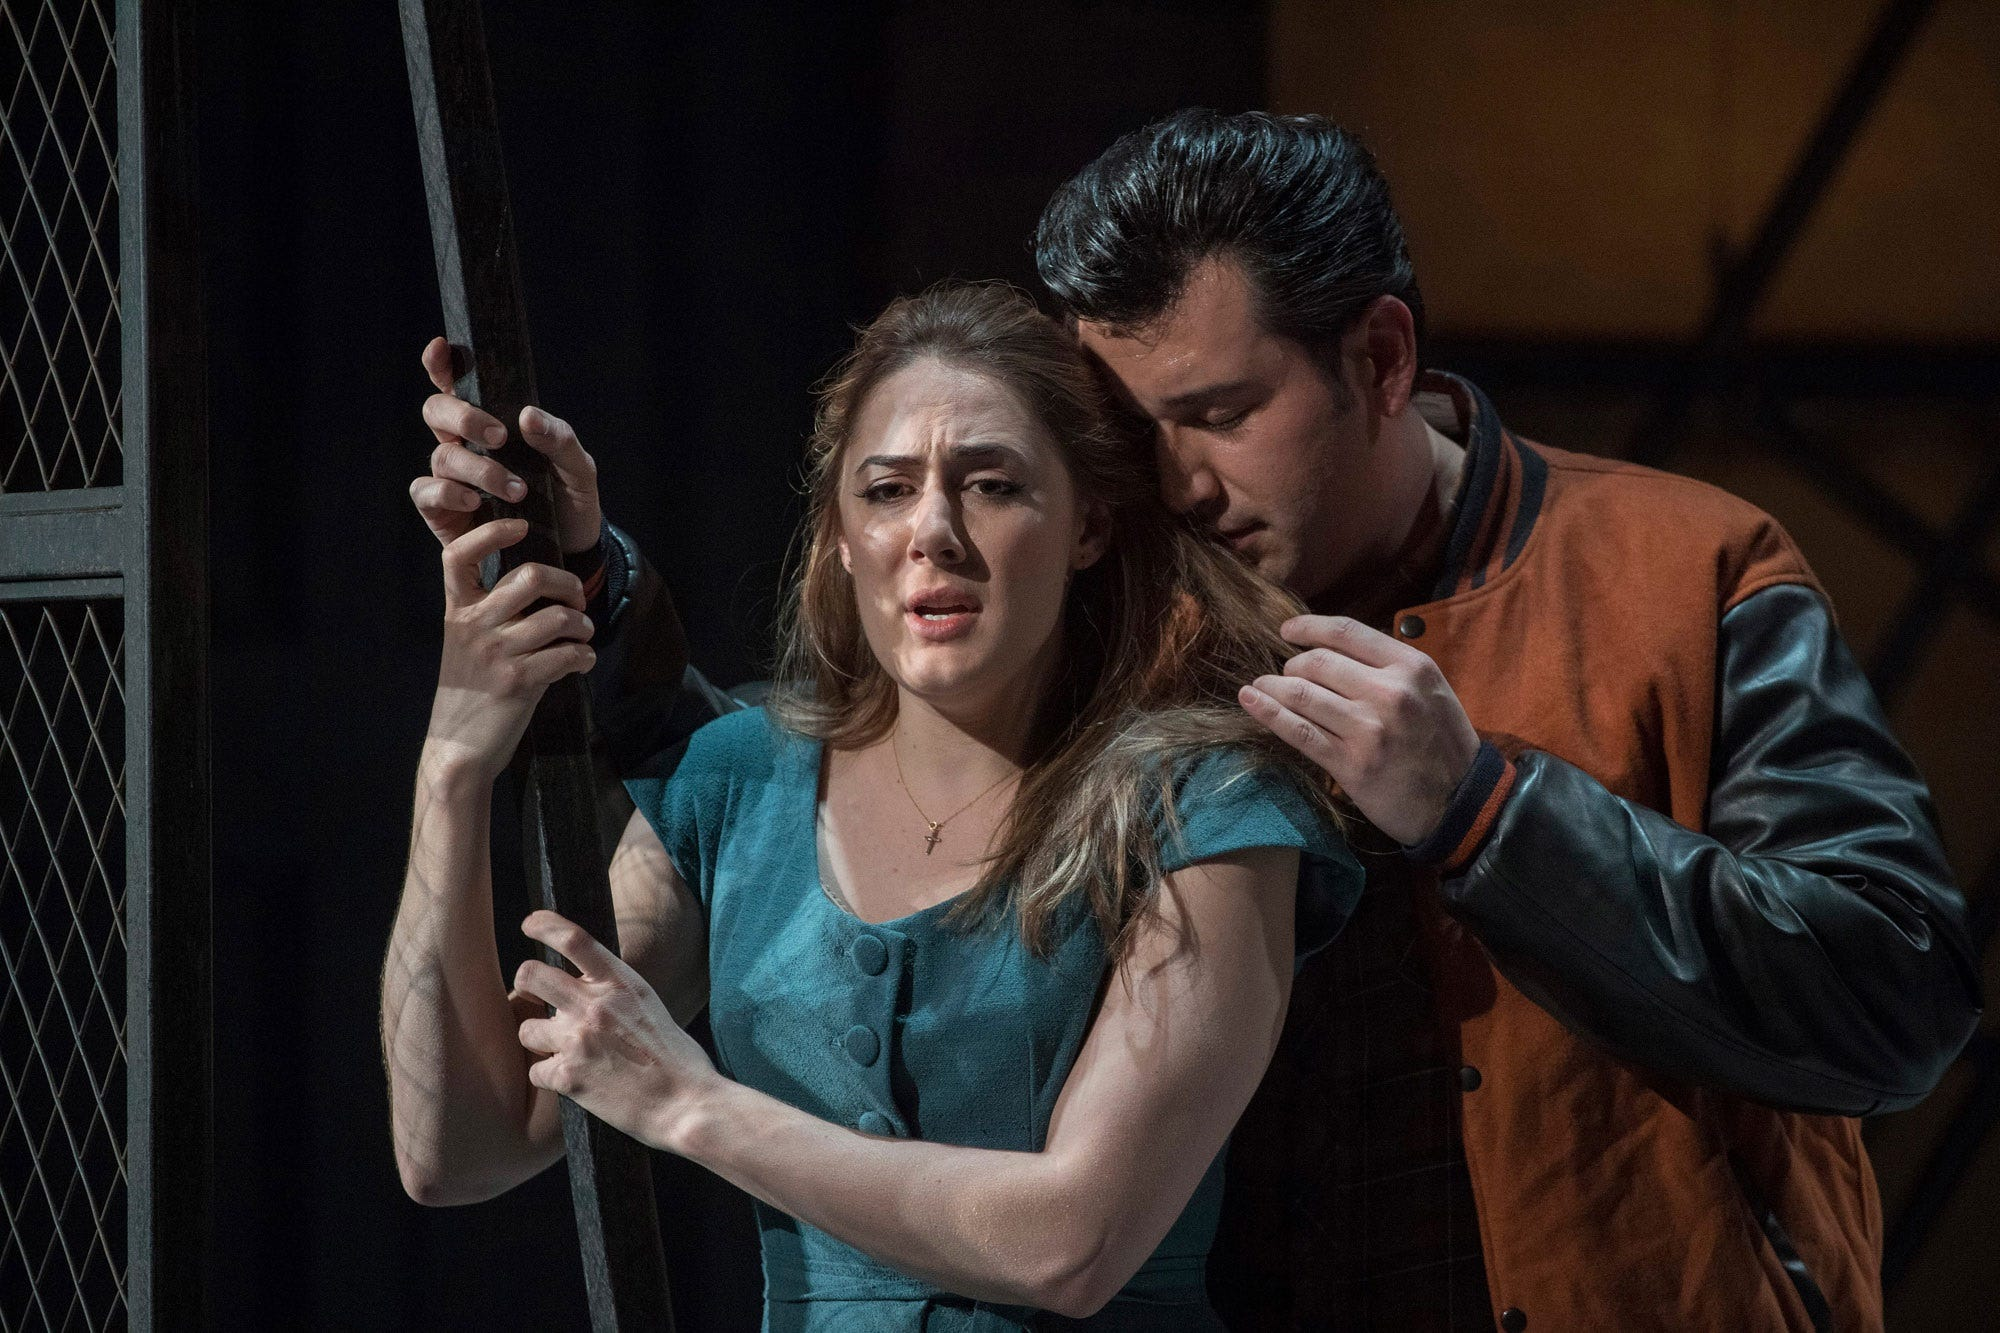 """Yuval Sharon is planning a five-opera season with freshly conceived productions from the opera repertoire like """"Rigoletto."""" In 2017, the Michigan Opera Theatre staged """"Rigoletto"""" with Sydney Mancasola, left, as Gilda and Joshua Guerrero as the Duke in the English National Opera's production."""